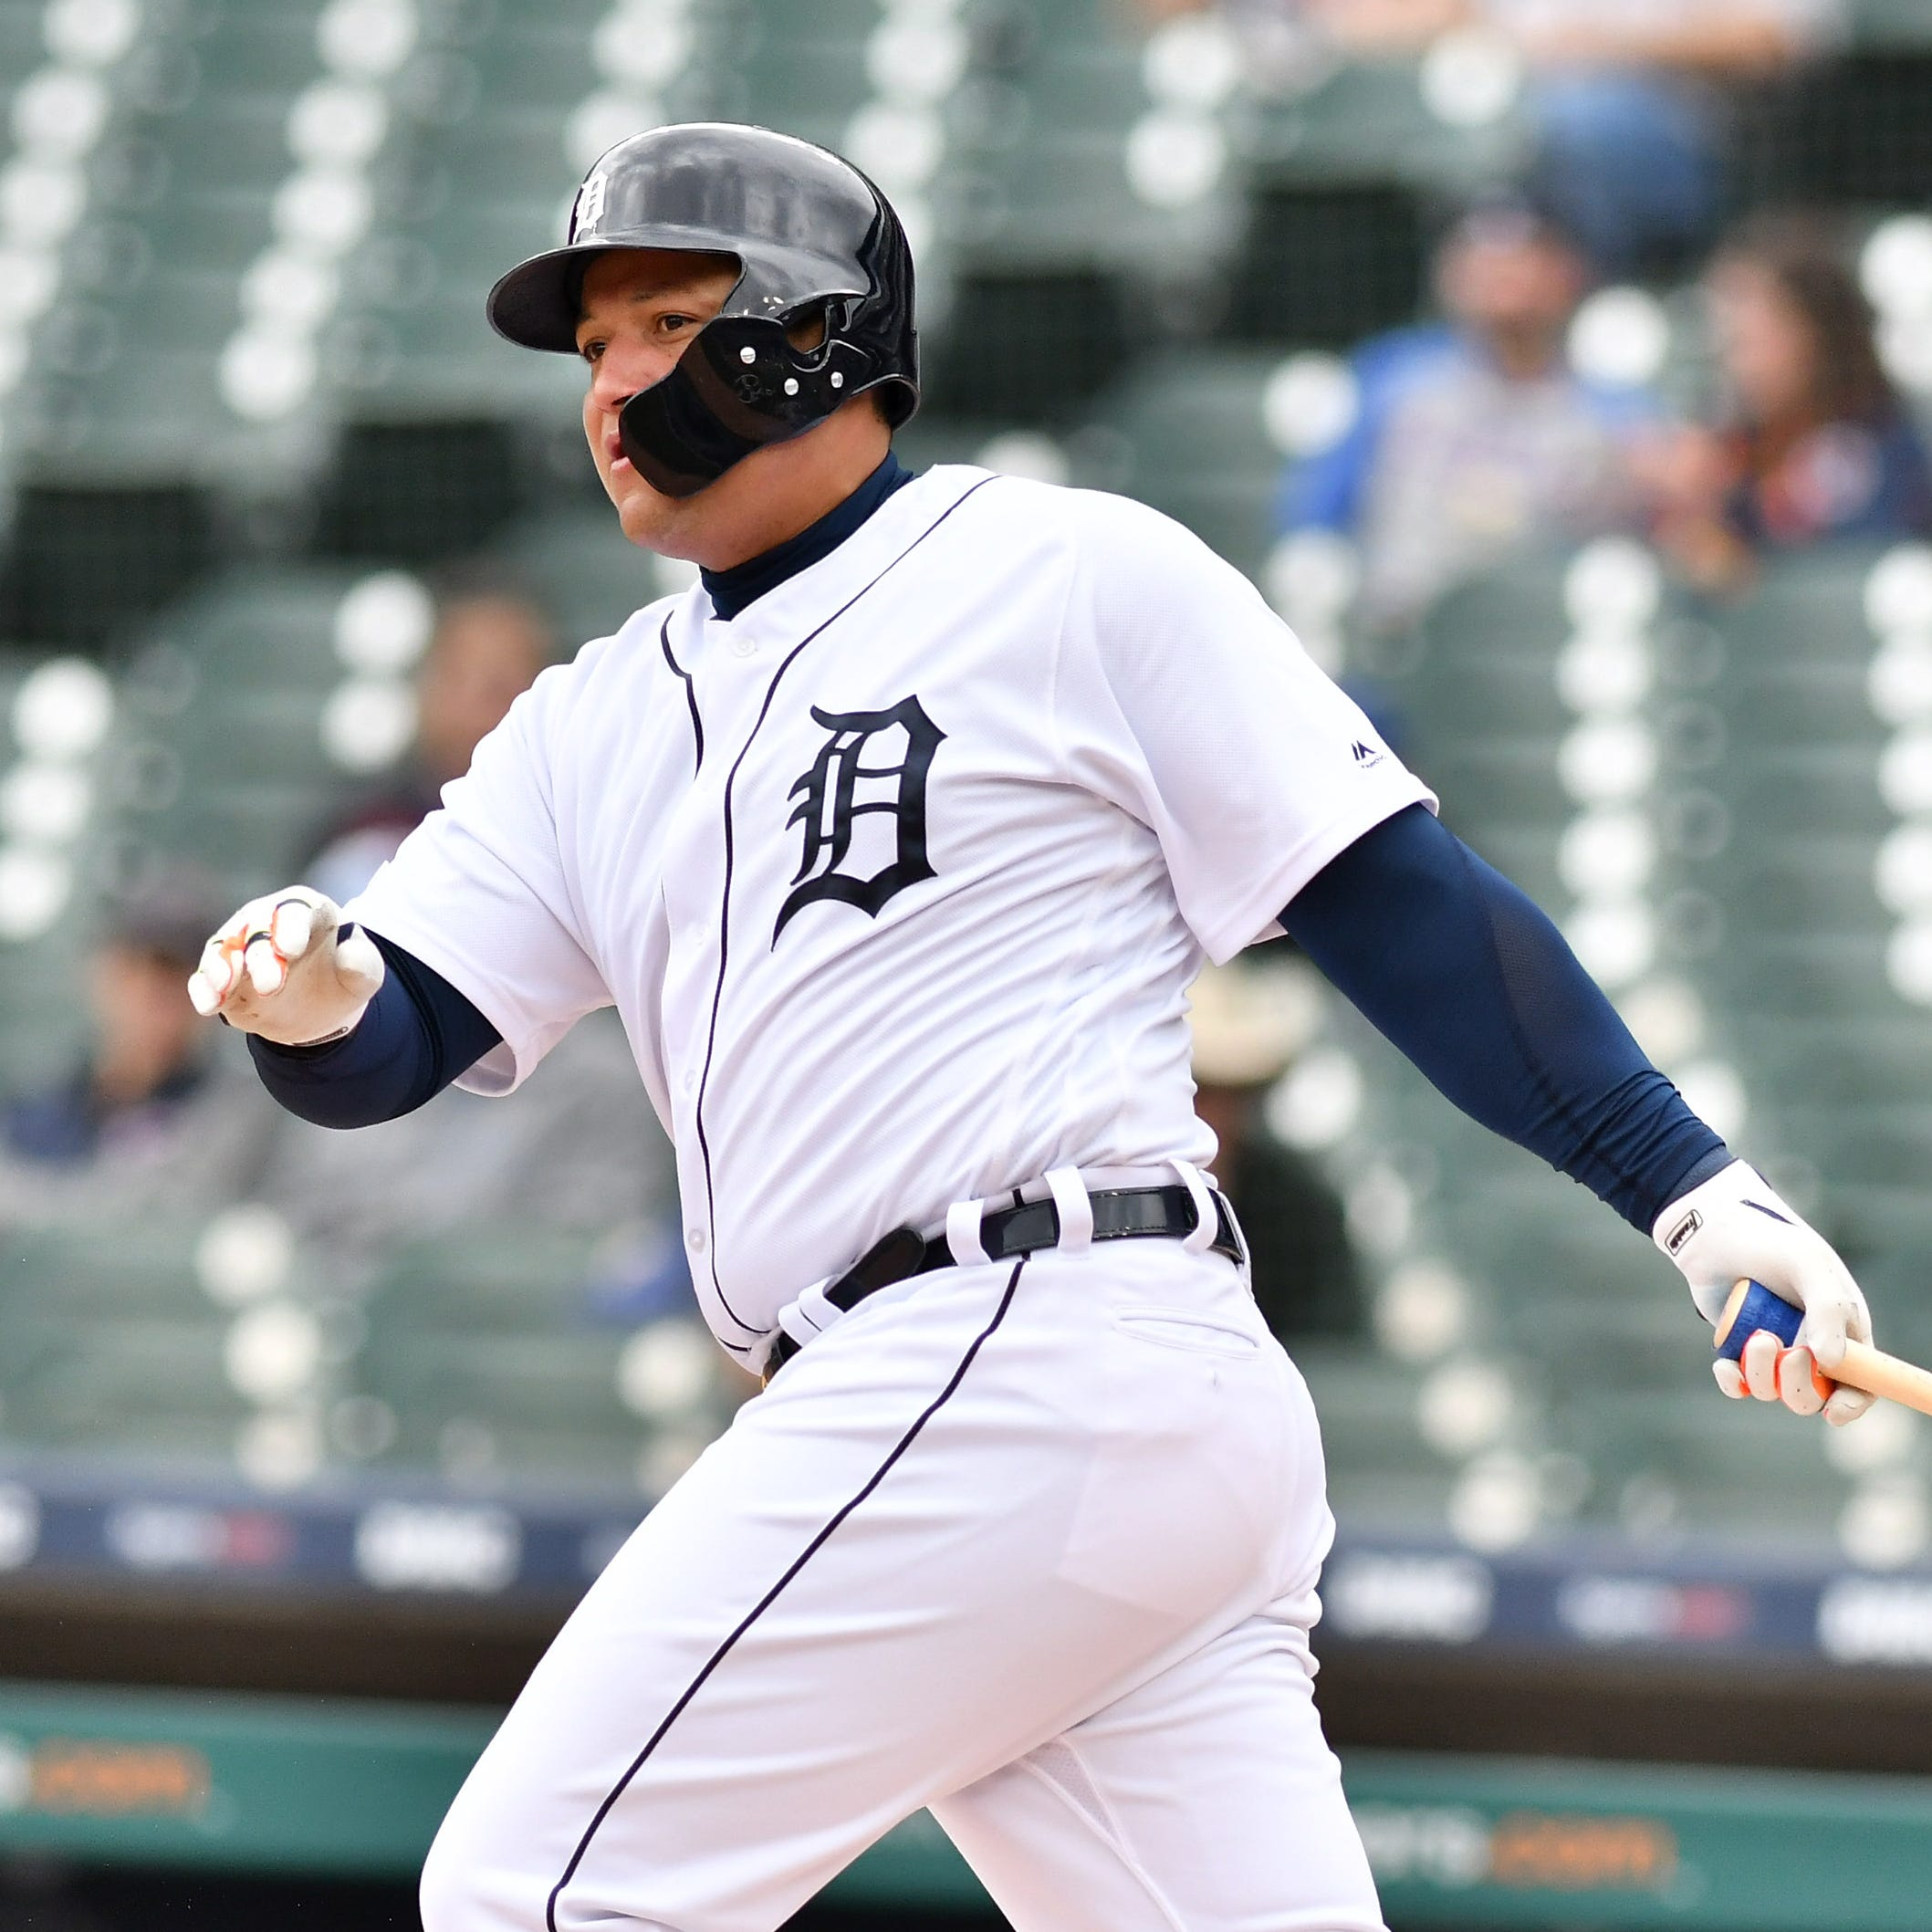 Miguel Cabrera, Nick Castellanos help Tigers vanquish five-game skid